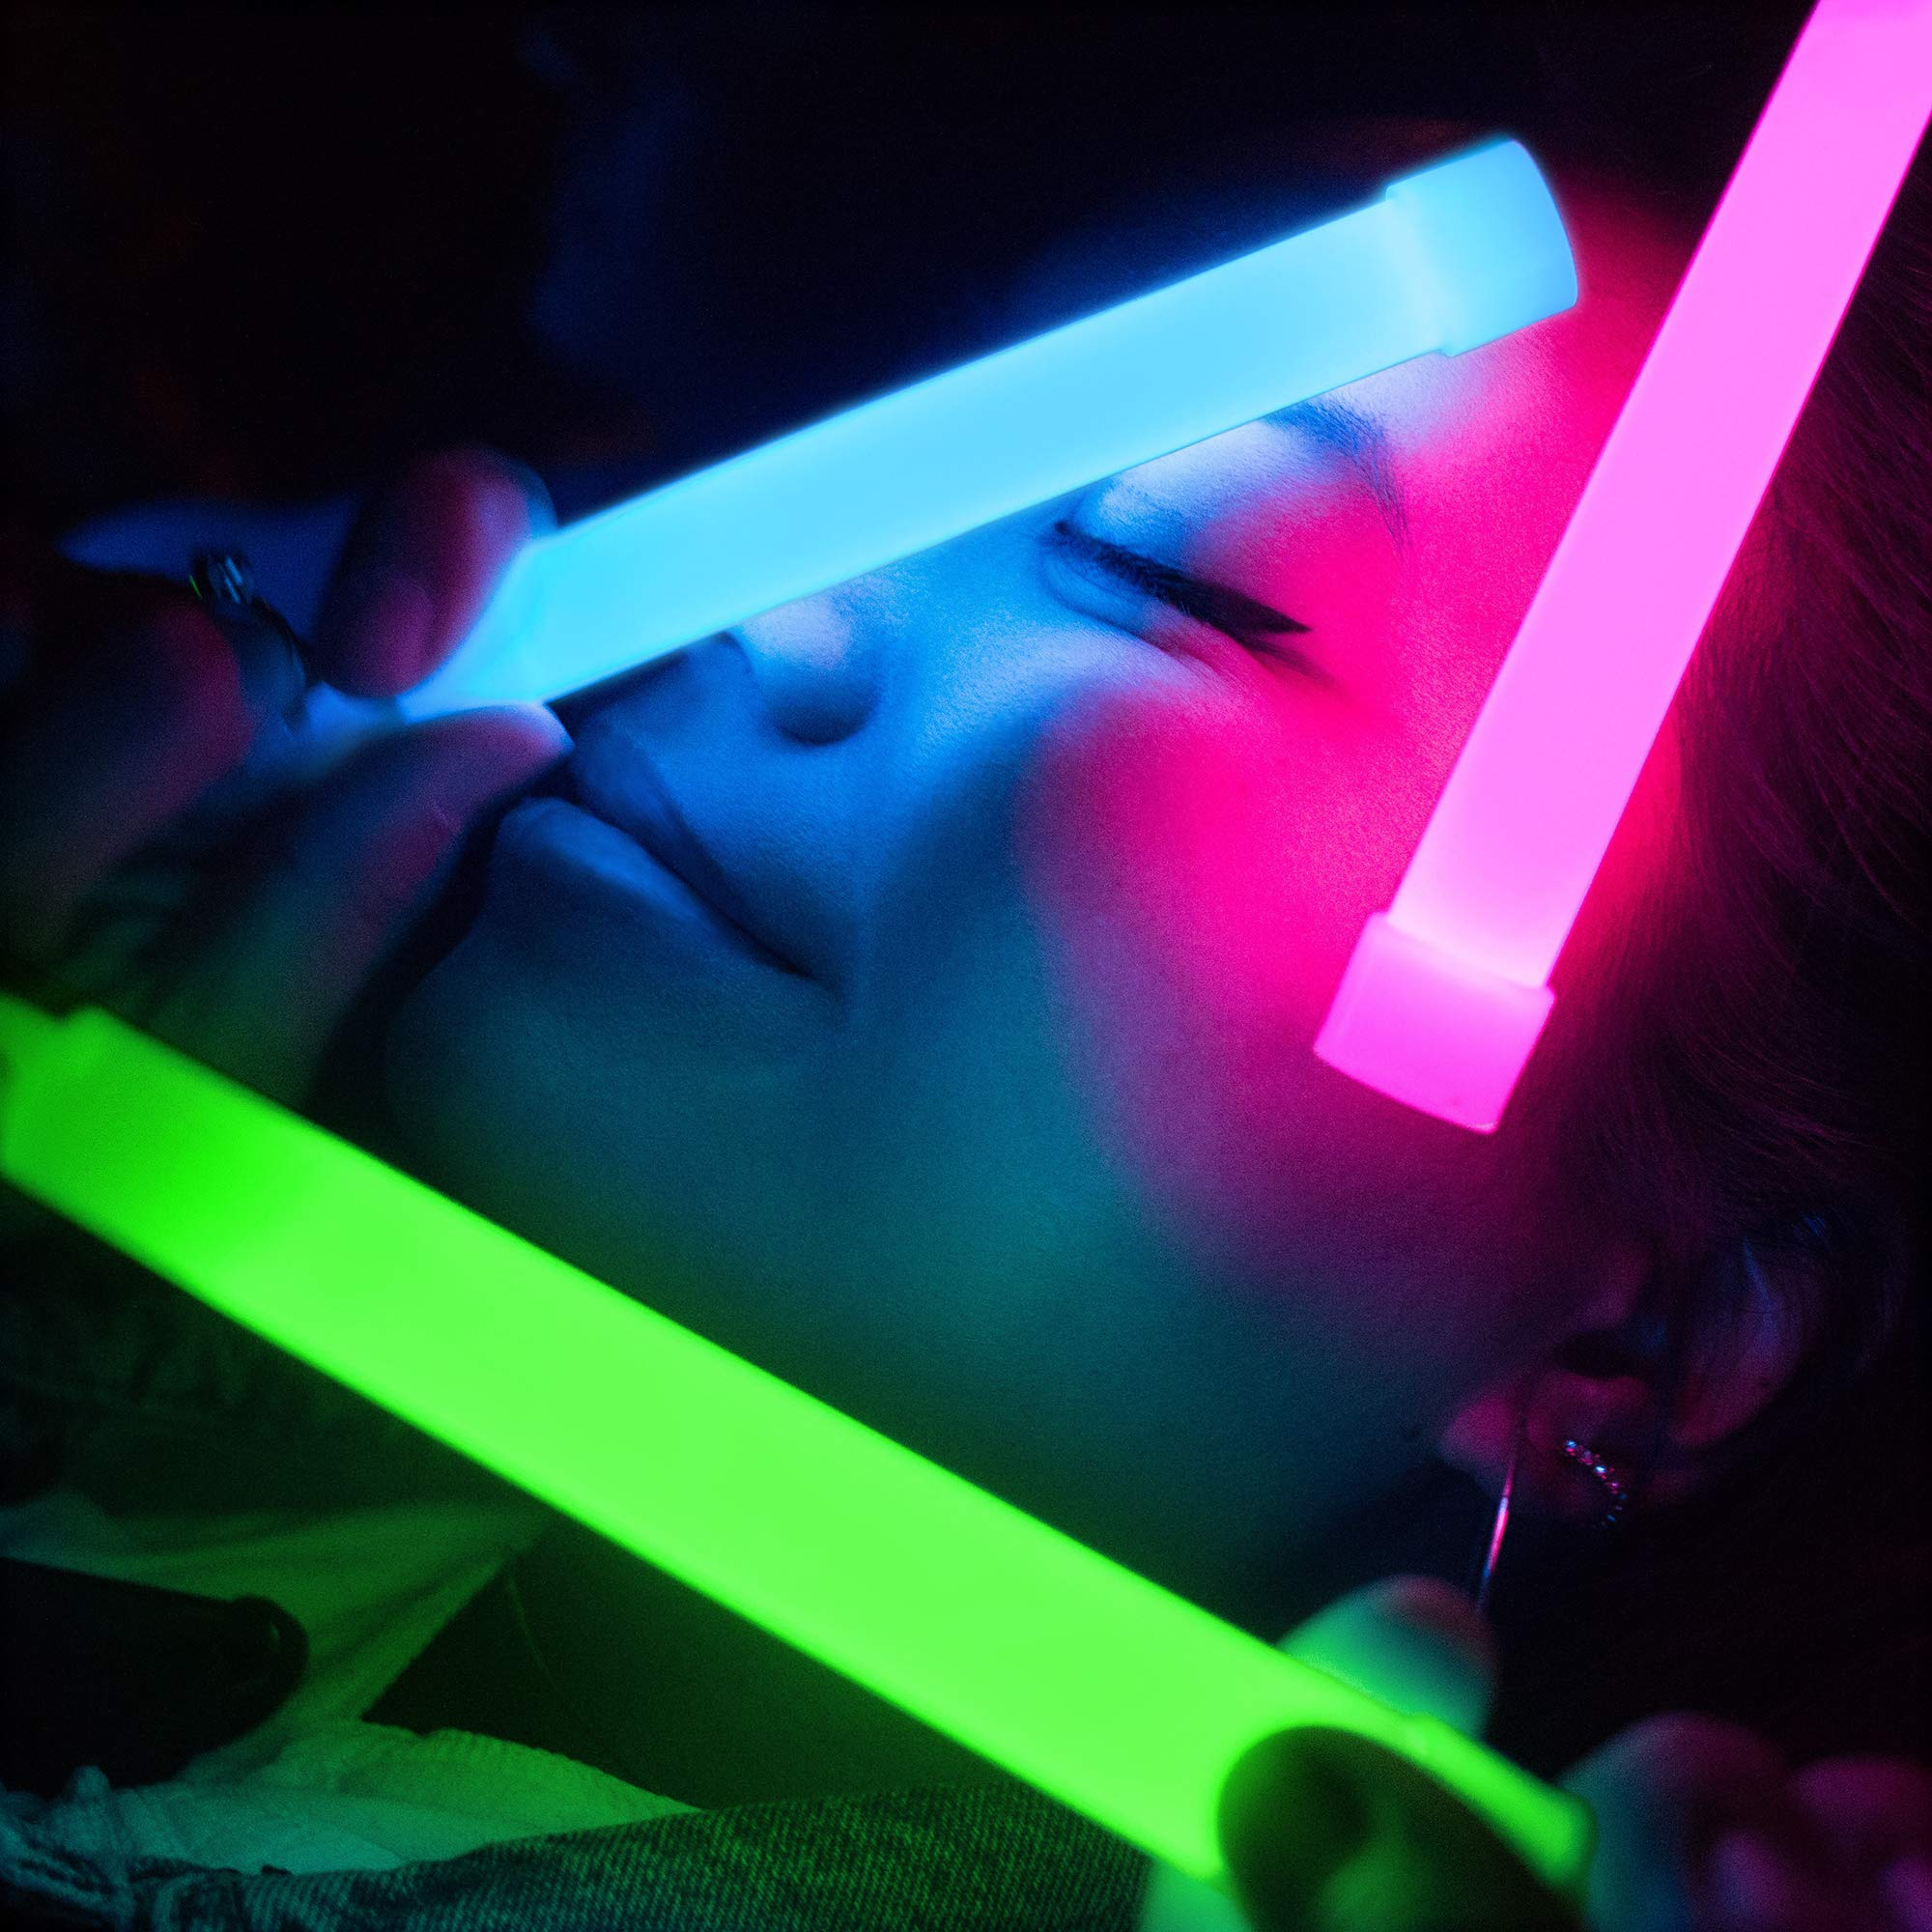 30 Pack Glow Sticks Bulk - Glow in The Dark Party Supplies - Waterproof and Non Toxic Neon Party Light Sticks for Kids and Adults (Multi Color, 30 Pack) by Glow Mind (Image #3)